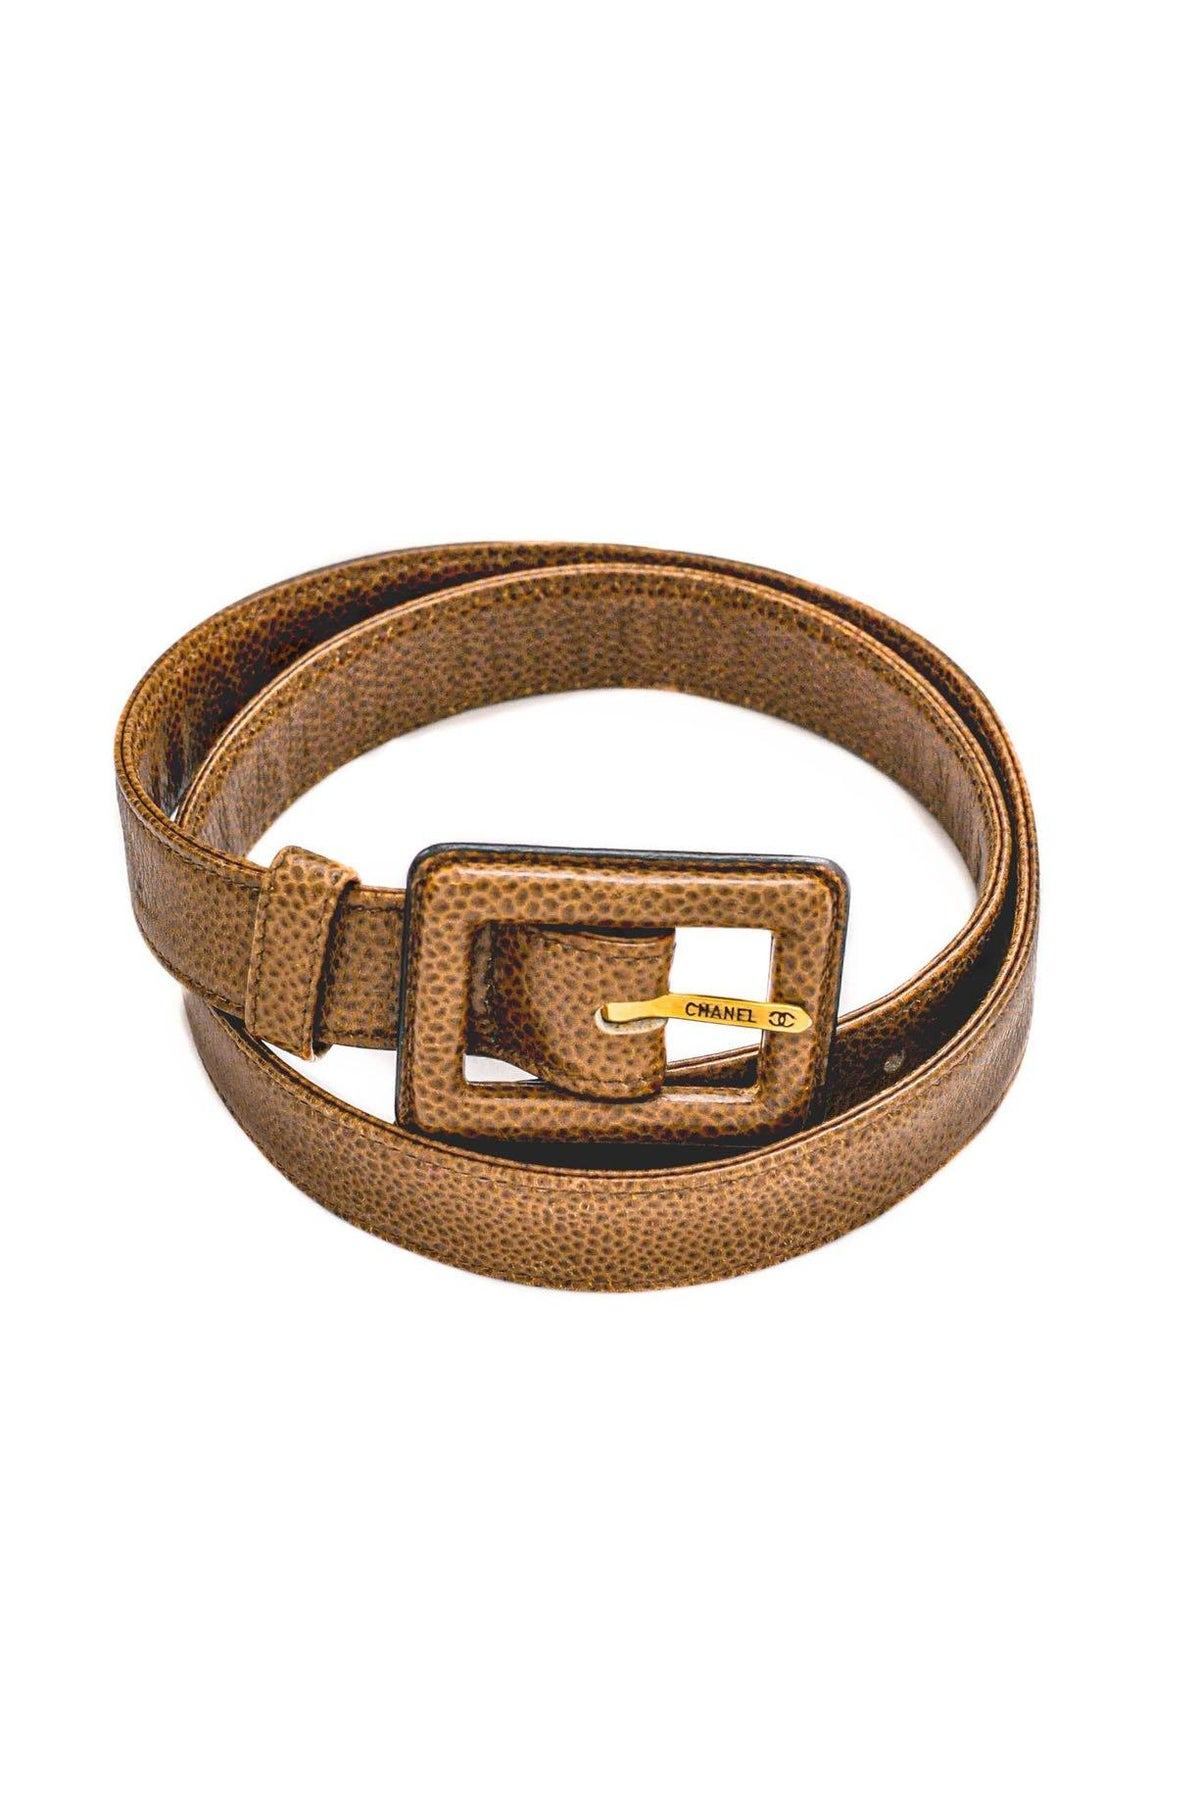 Vintage Chanel Brown Caviar Leather Belt from Sweet and Spark